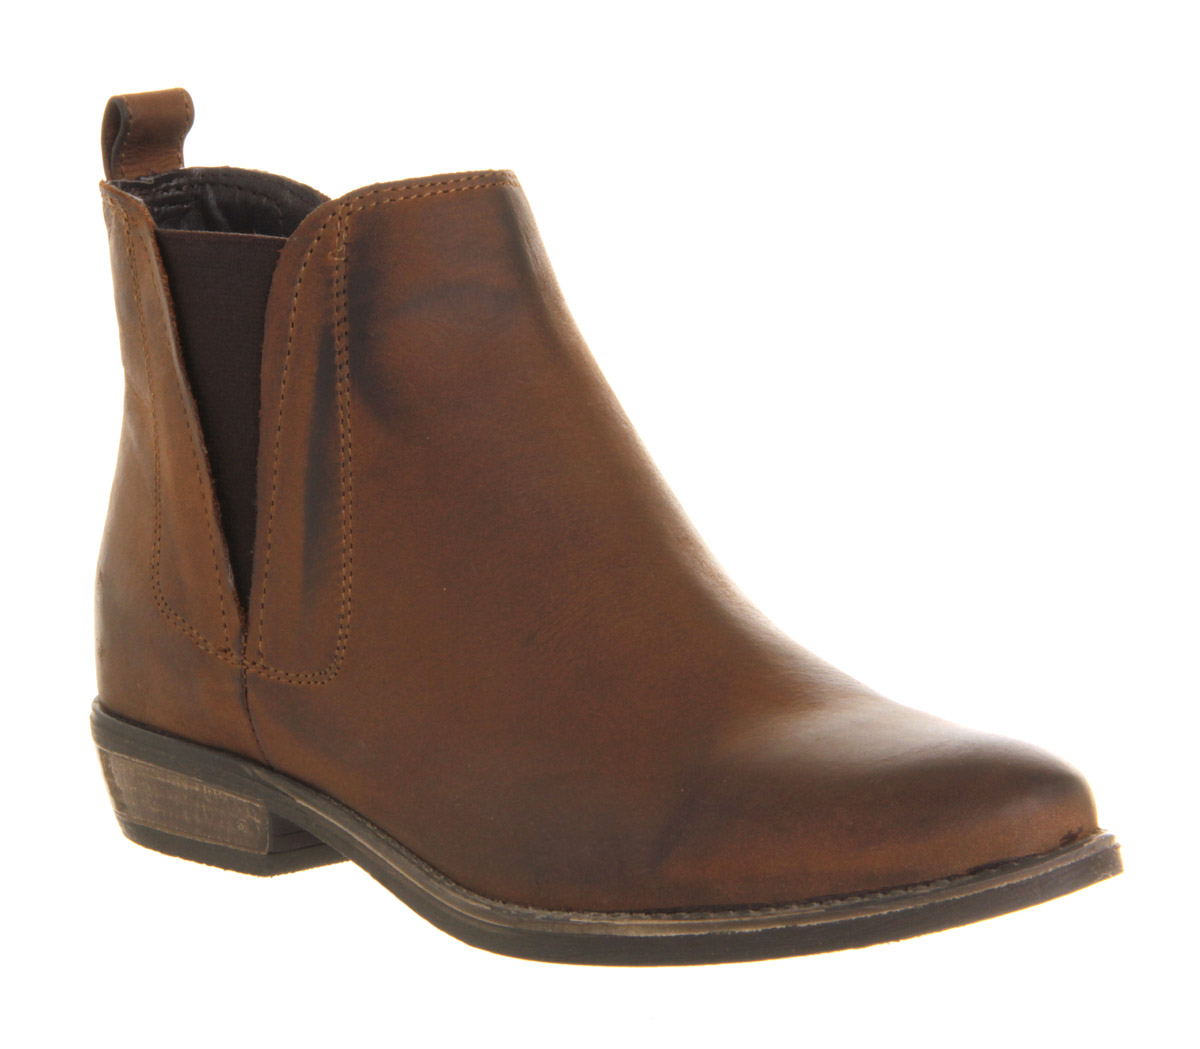 Office Shoes Womens Chelsea Boots